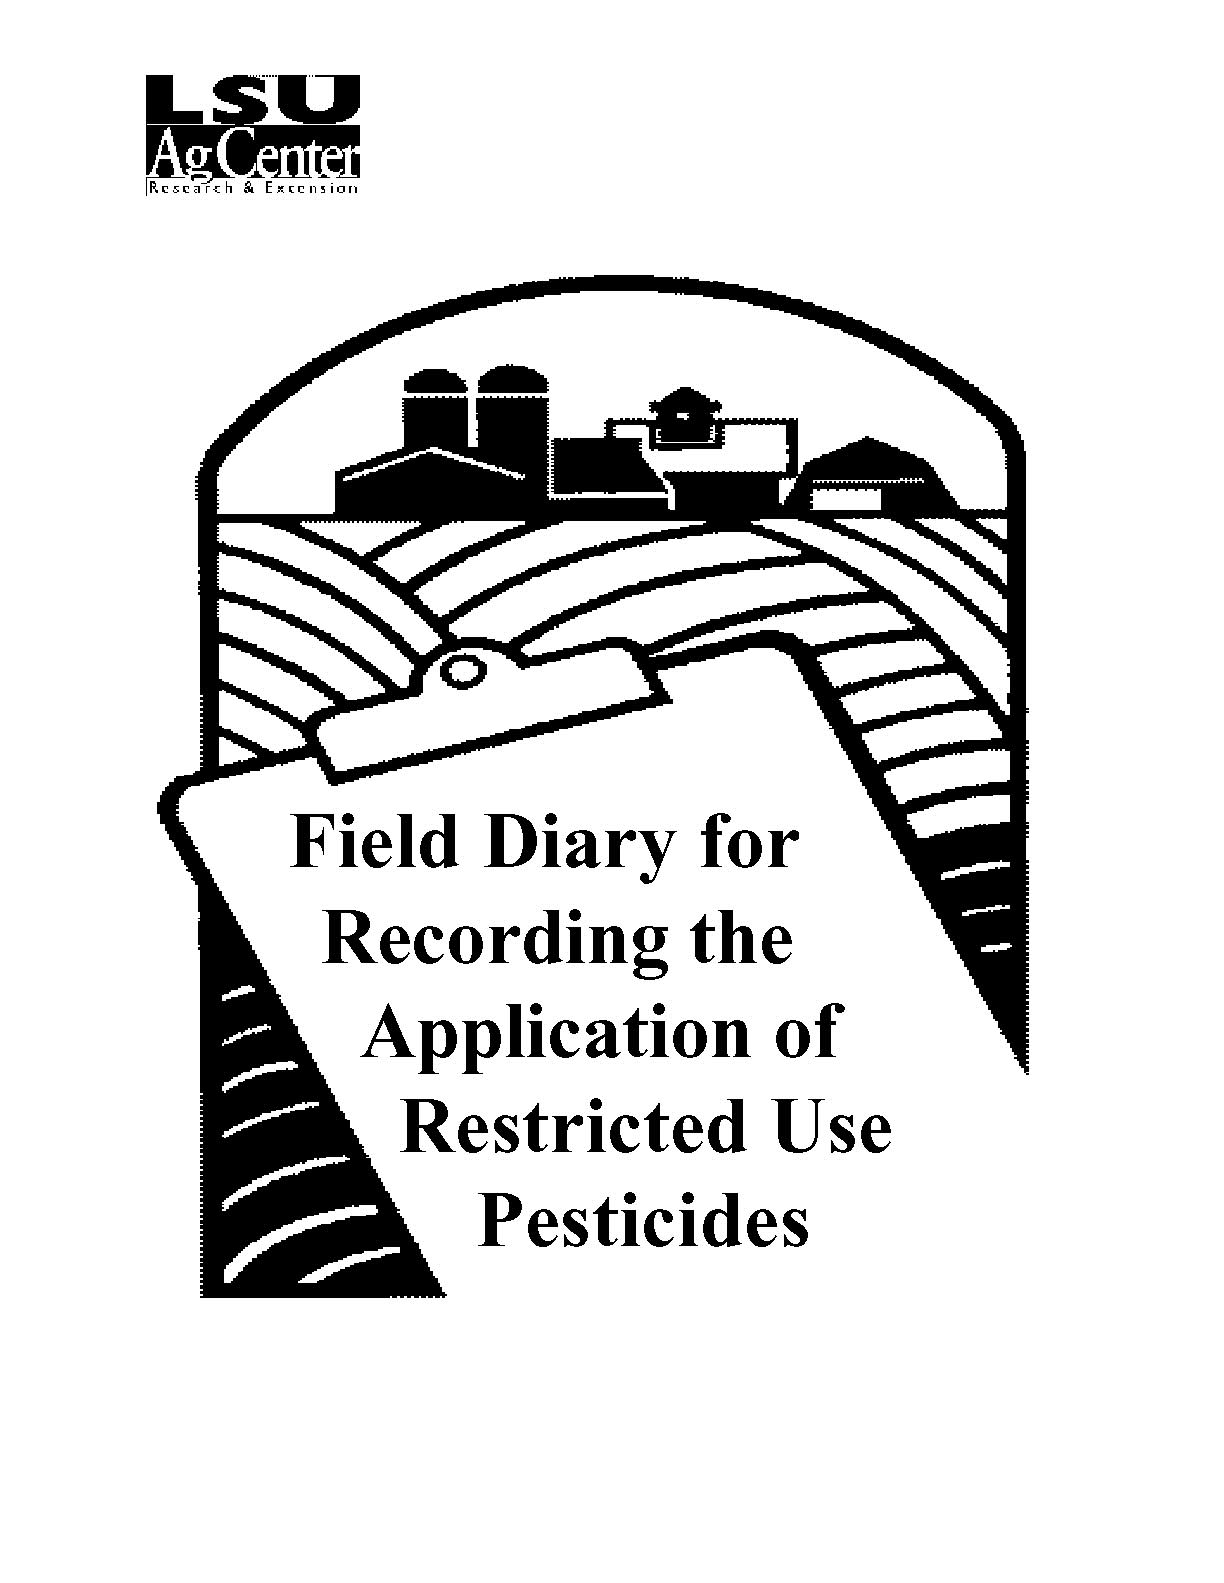 Field Diary for Recording the Application of Restricted Use Pesticides